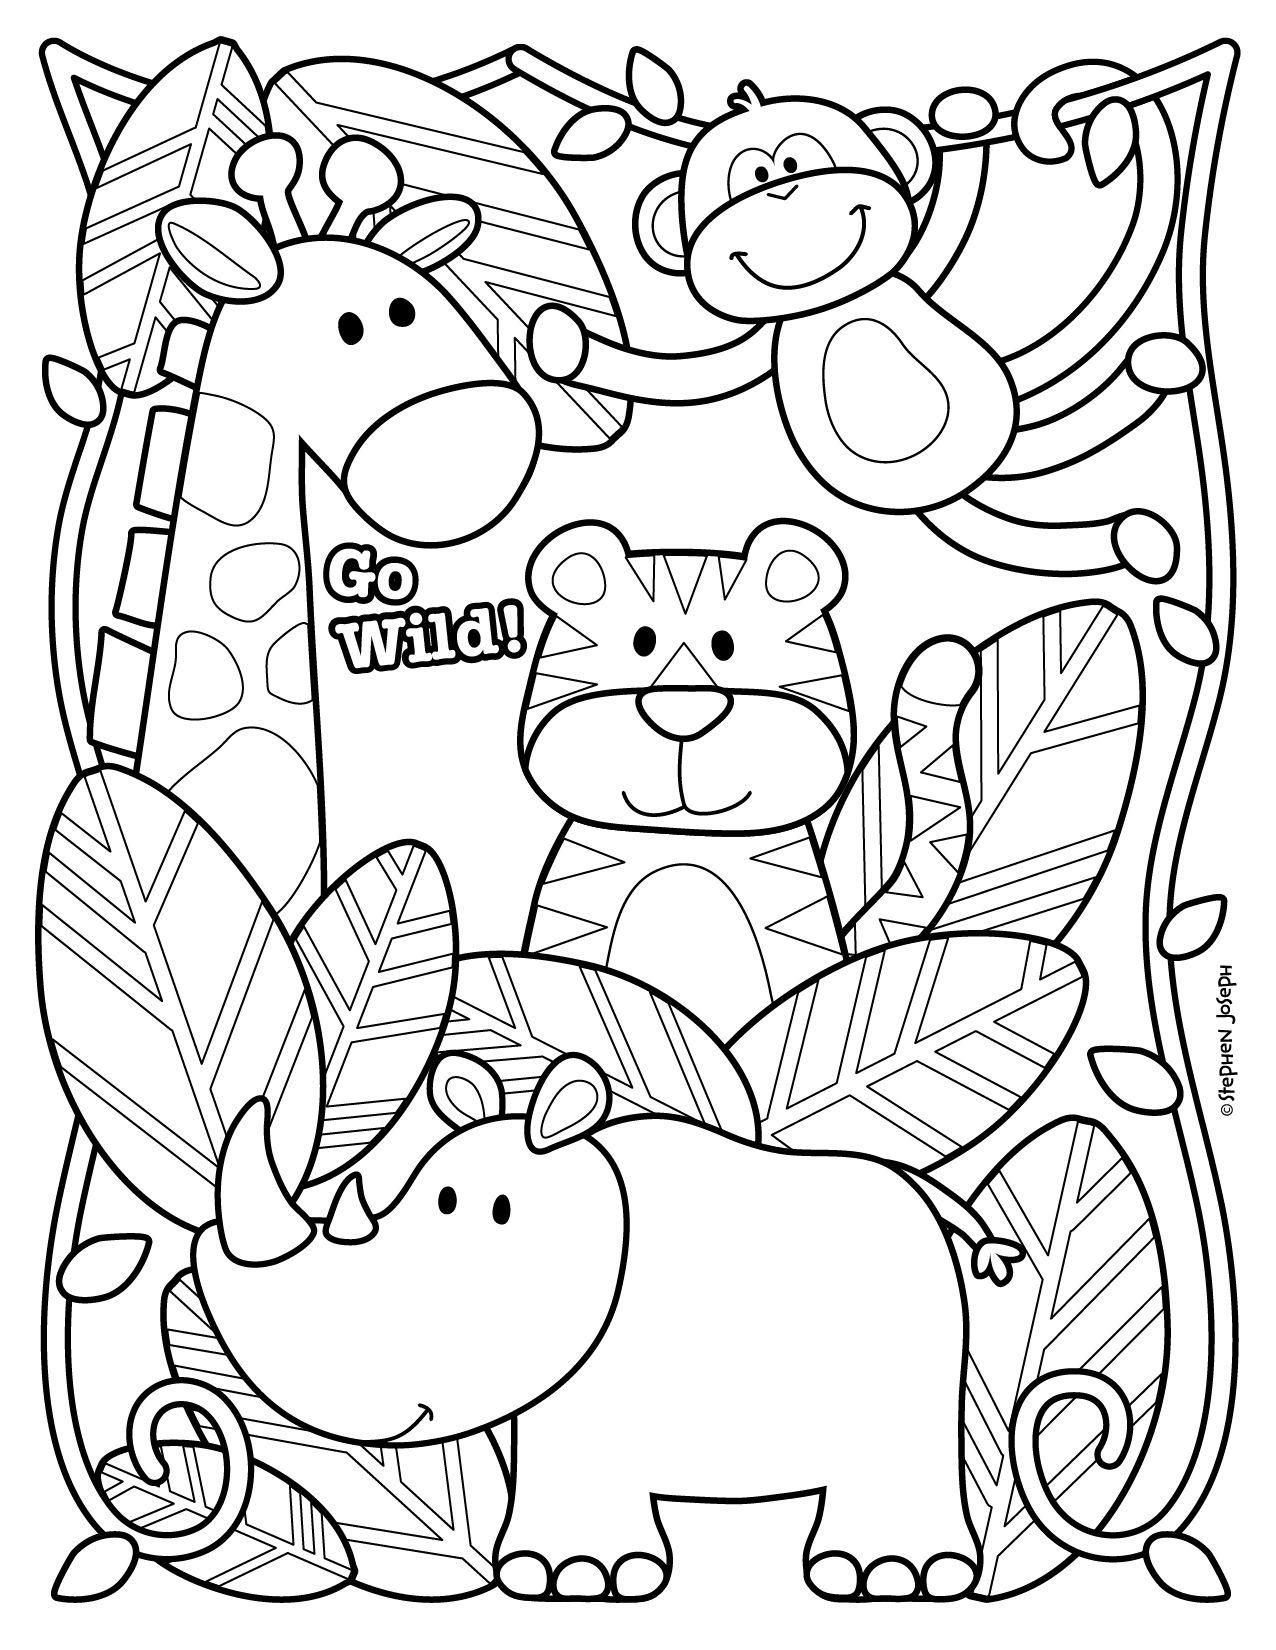 Zoo coloring pictures for preschool